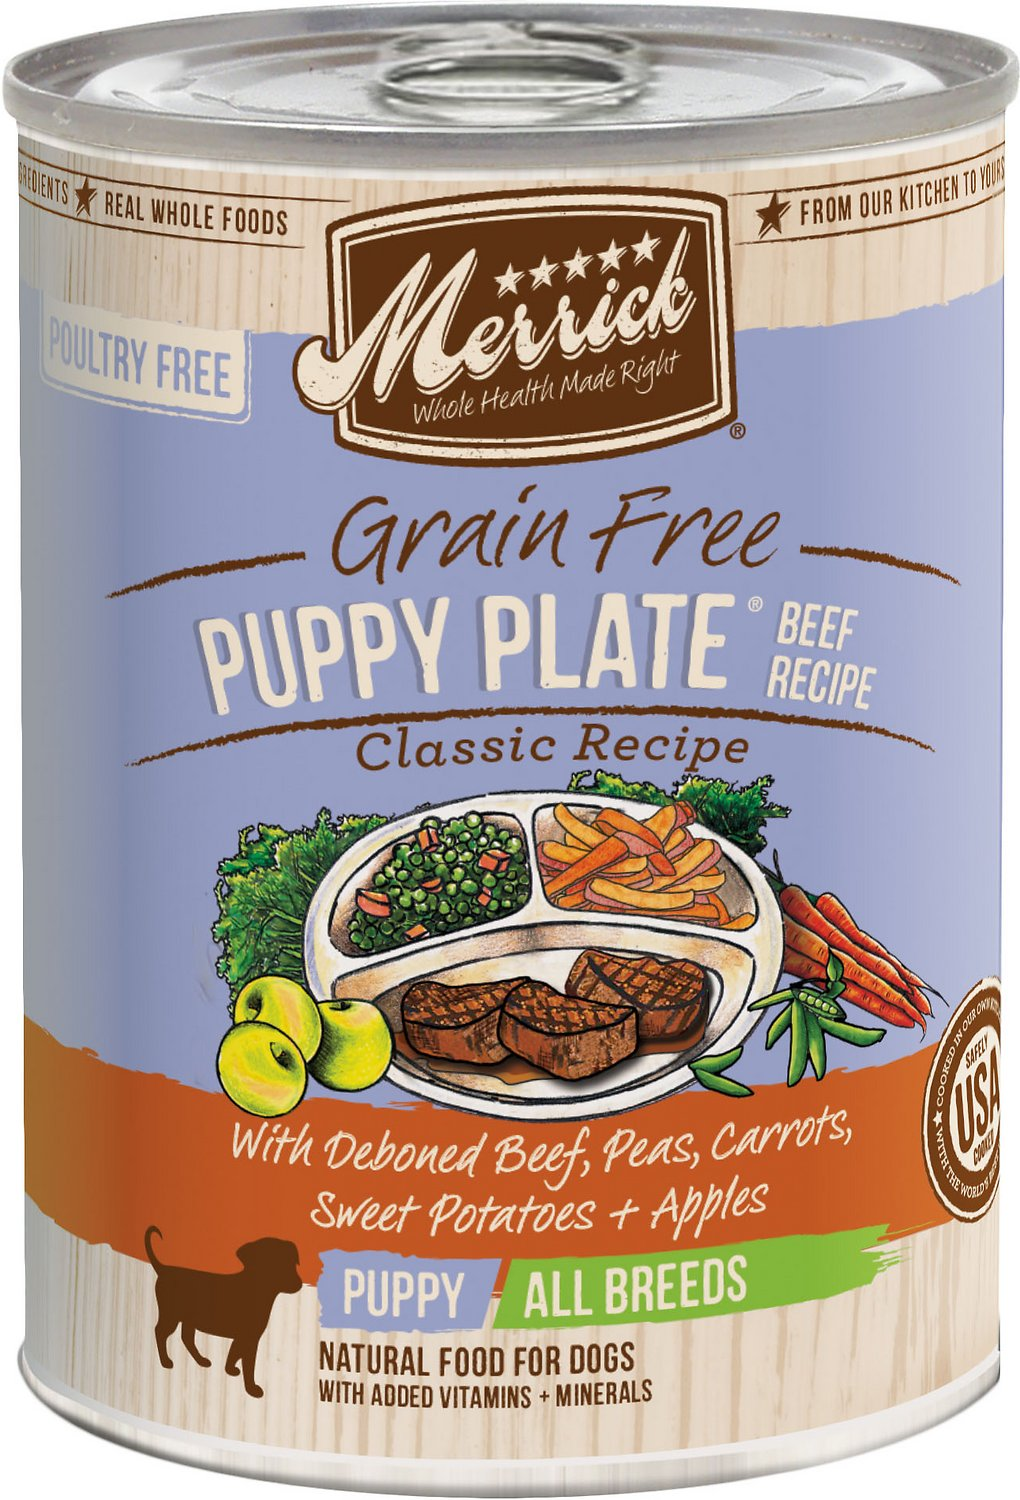 Merrick Grain-Free Puppy Plate Beef Recipe Canned Dog Food, 13.2-oz